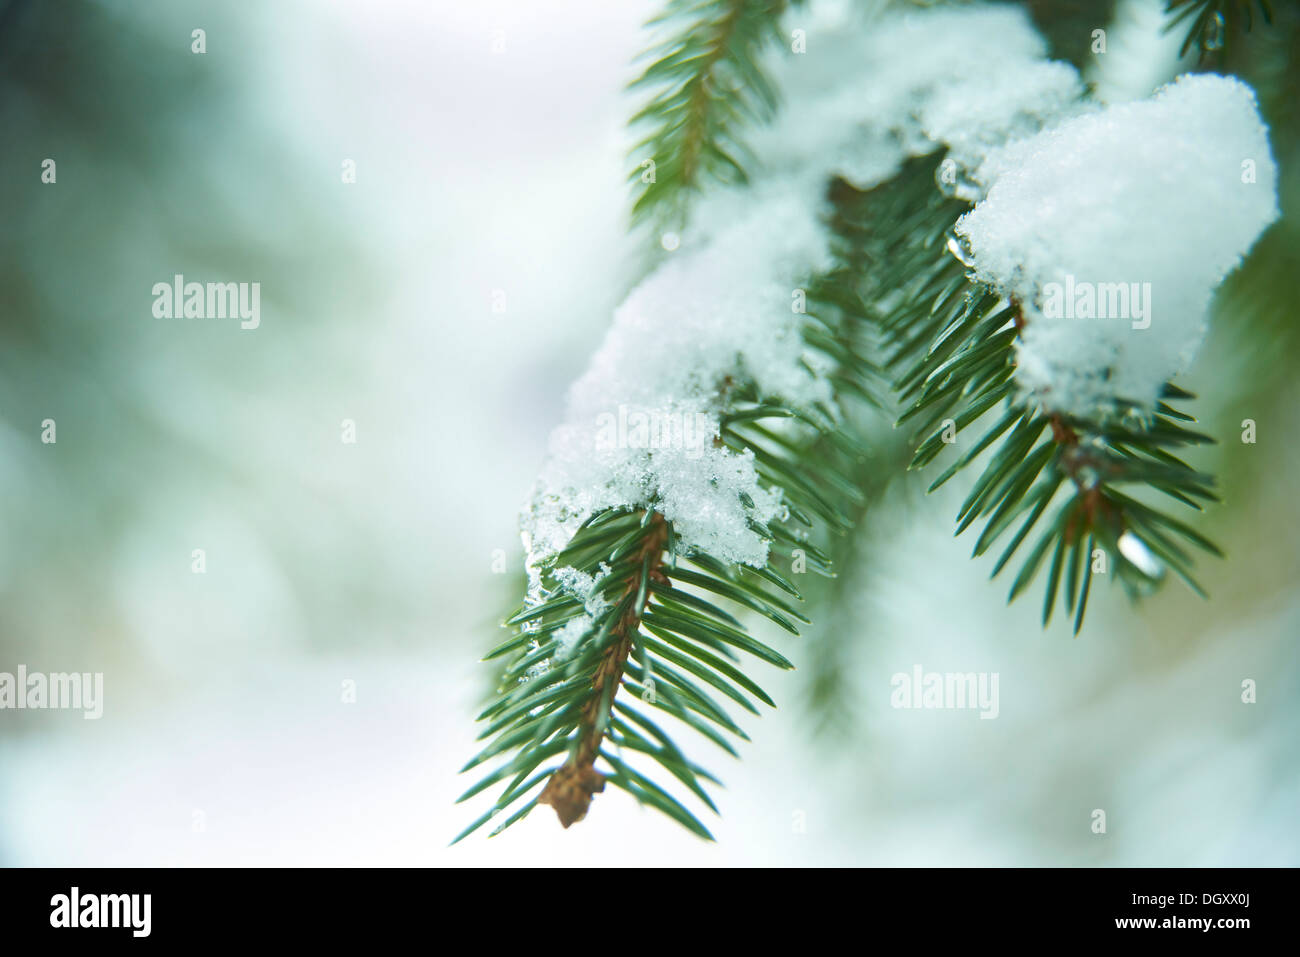 Spruce branch covered with snow - Stock Image